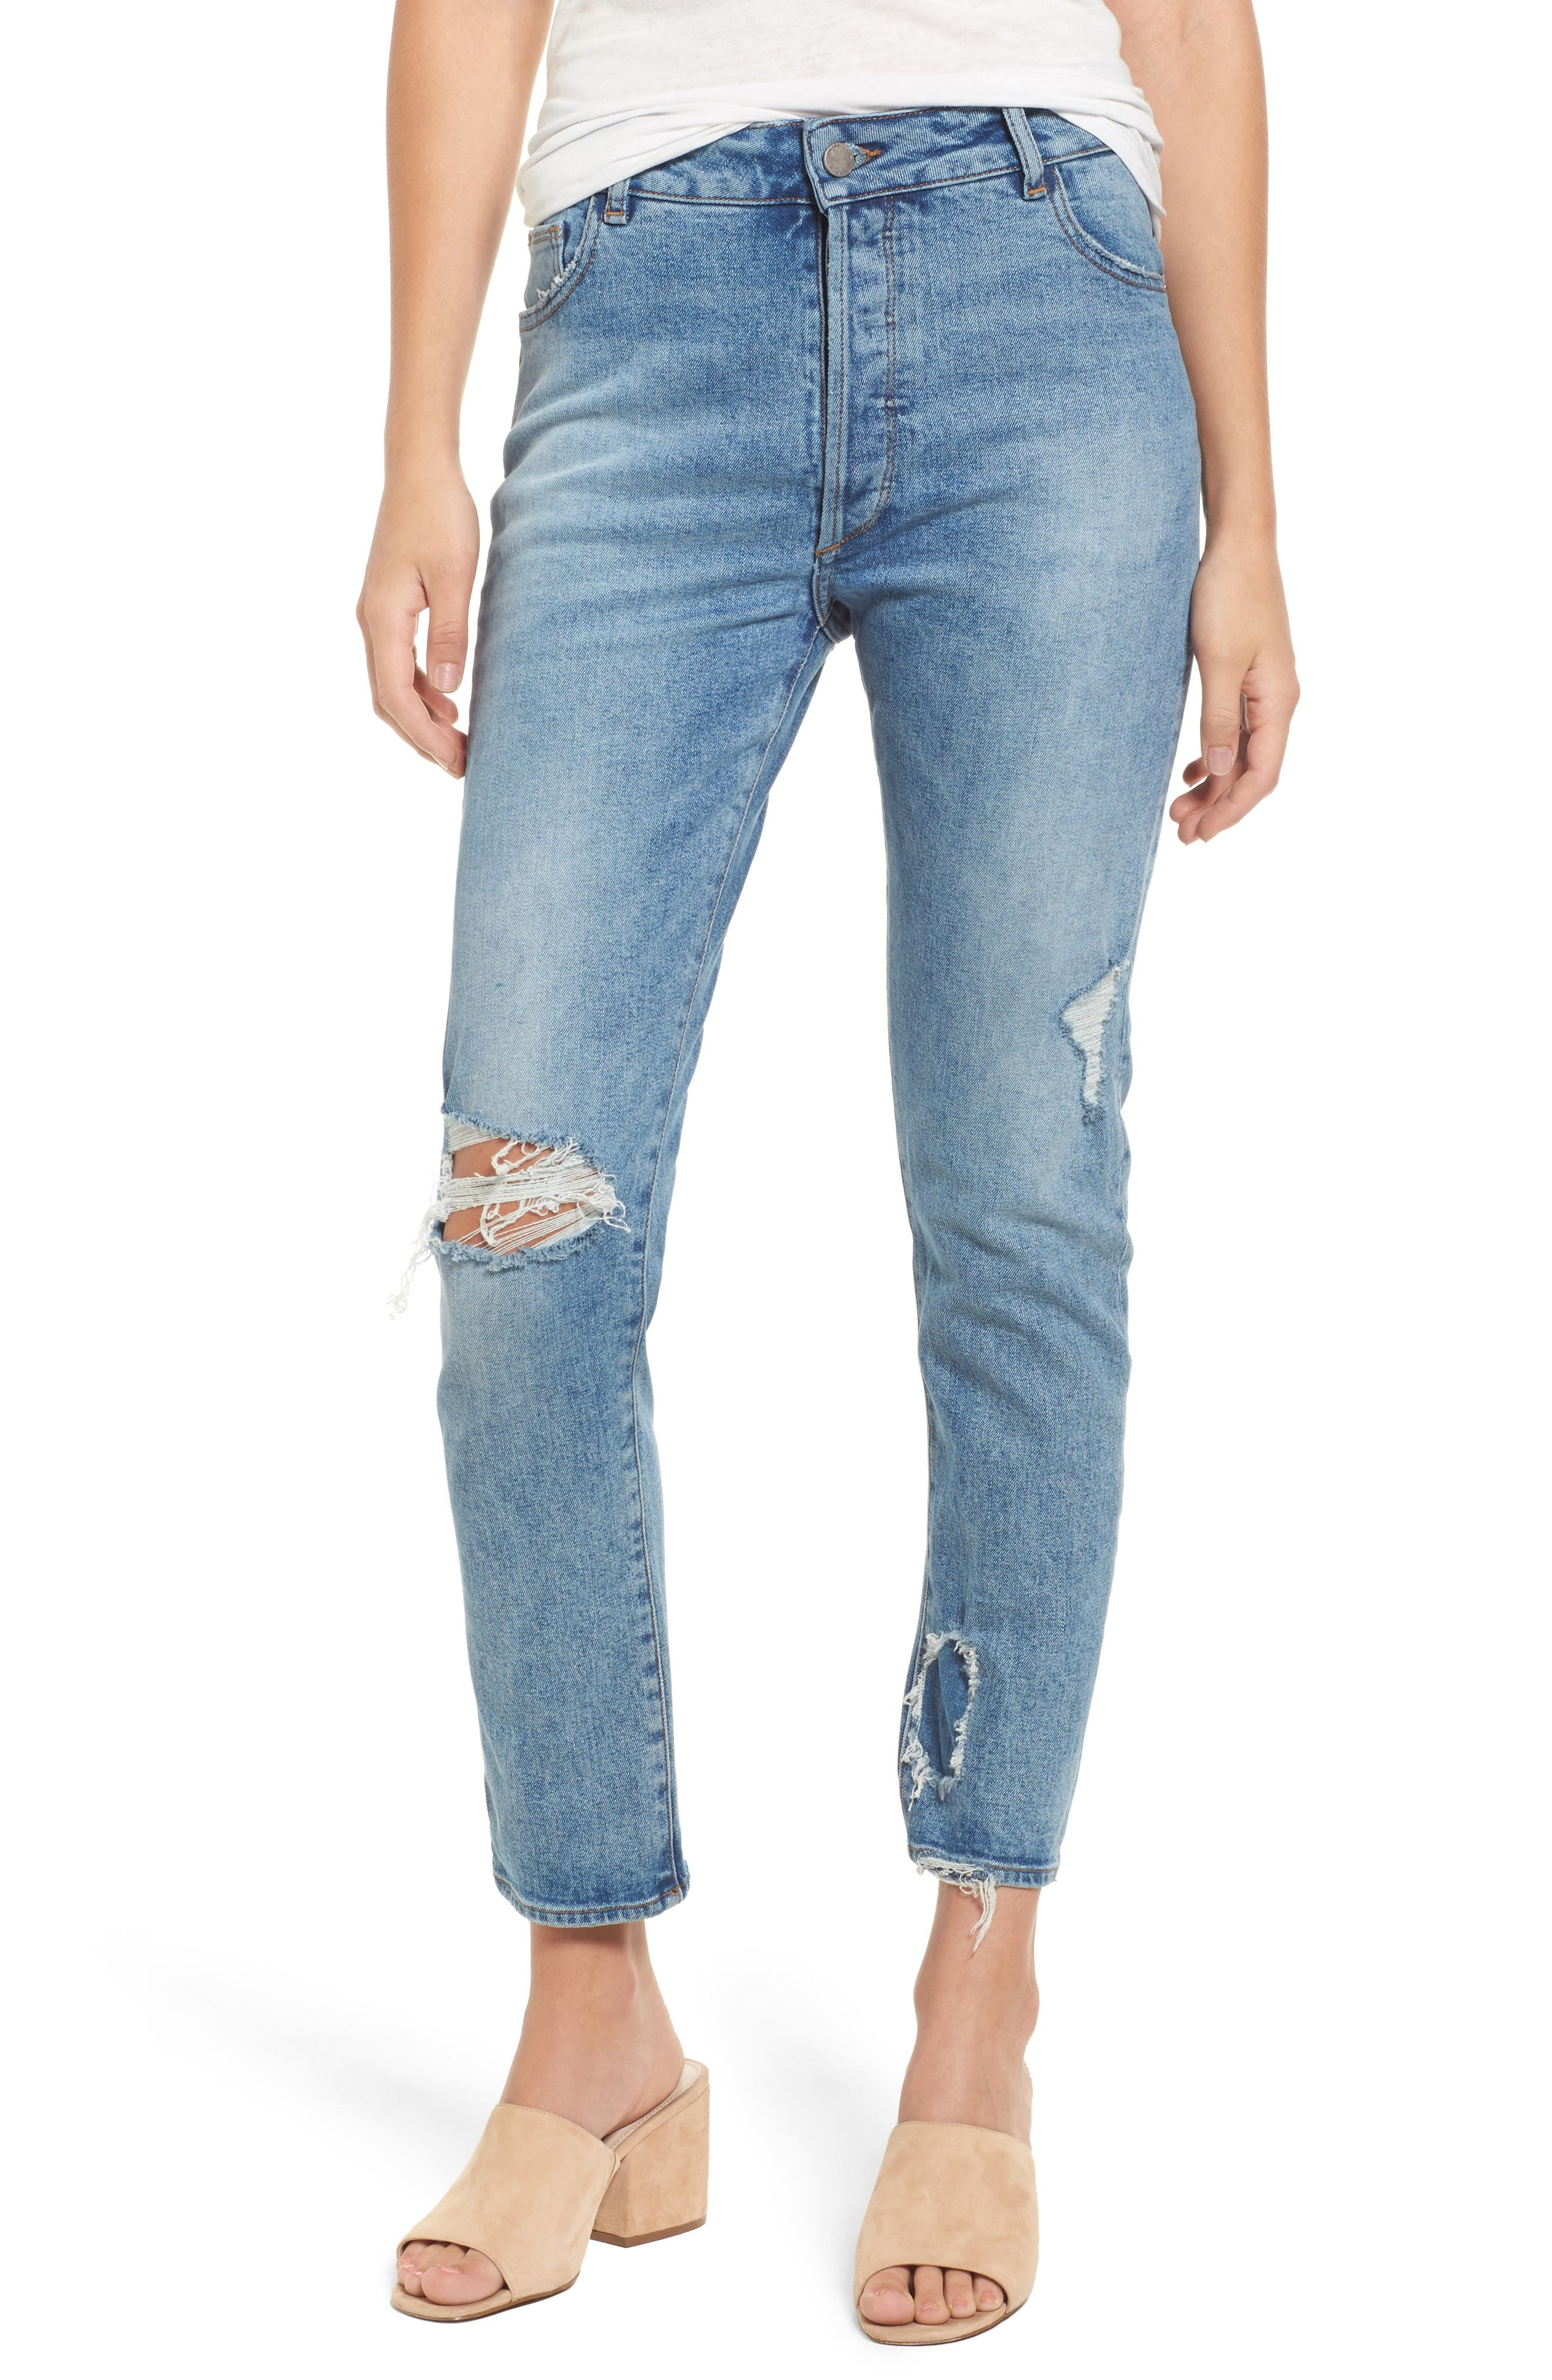 Bella Vintage Ankle Skinny Jeans,                             Main thumbnail 1, color,